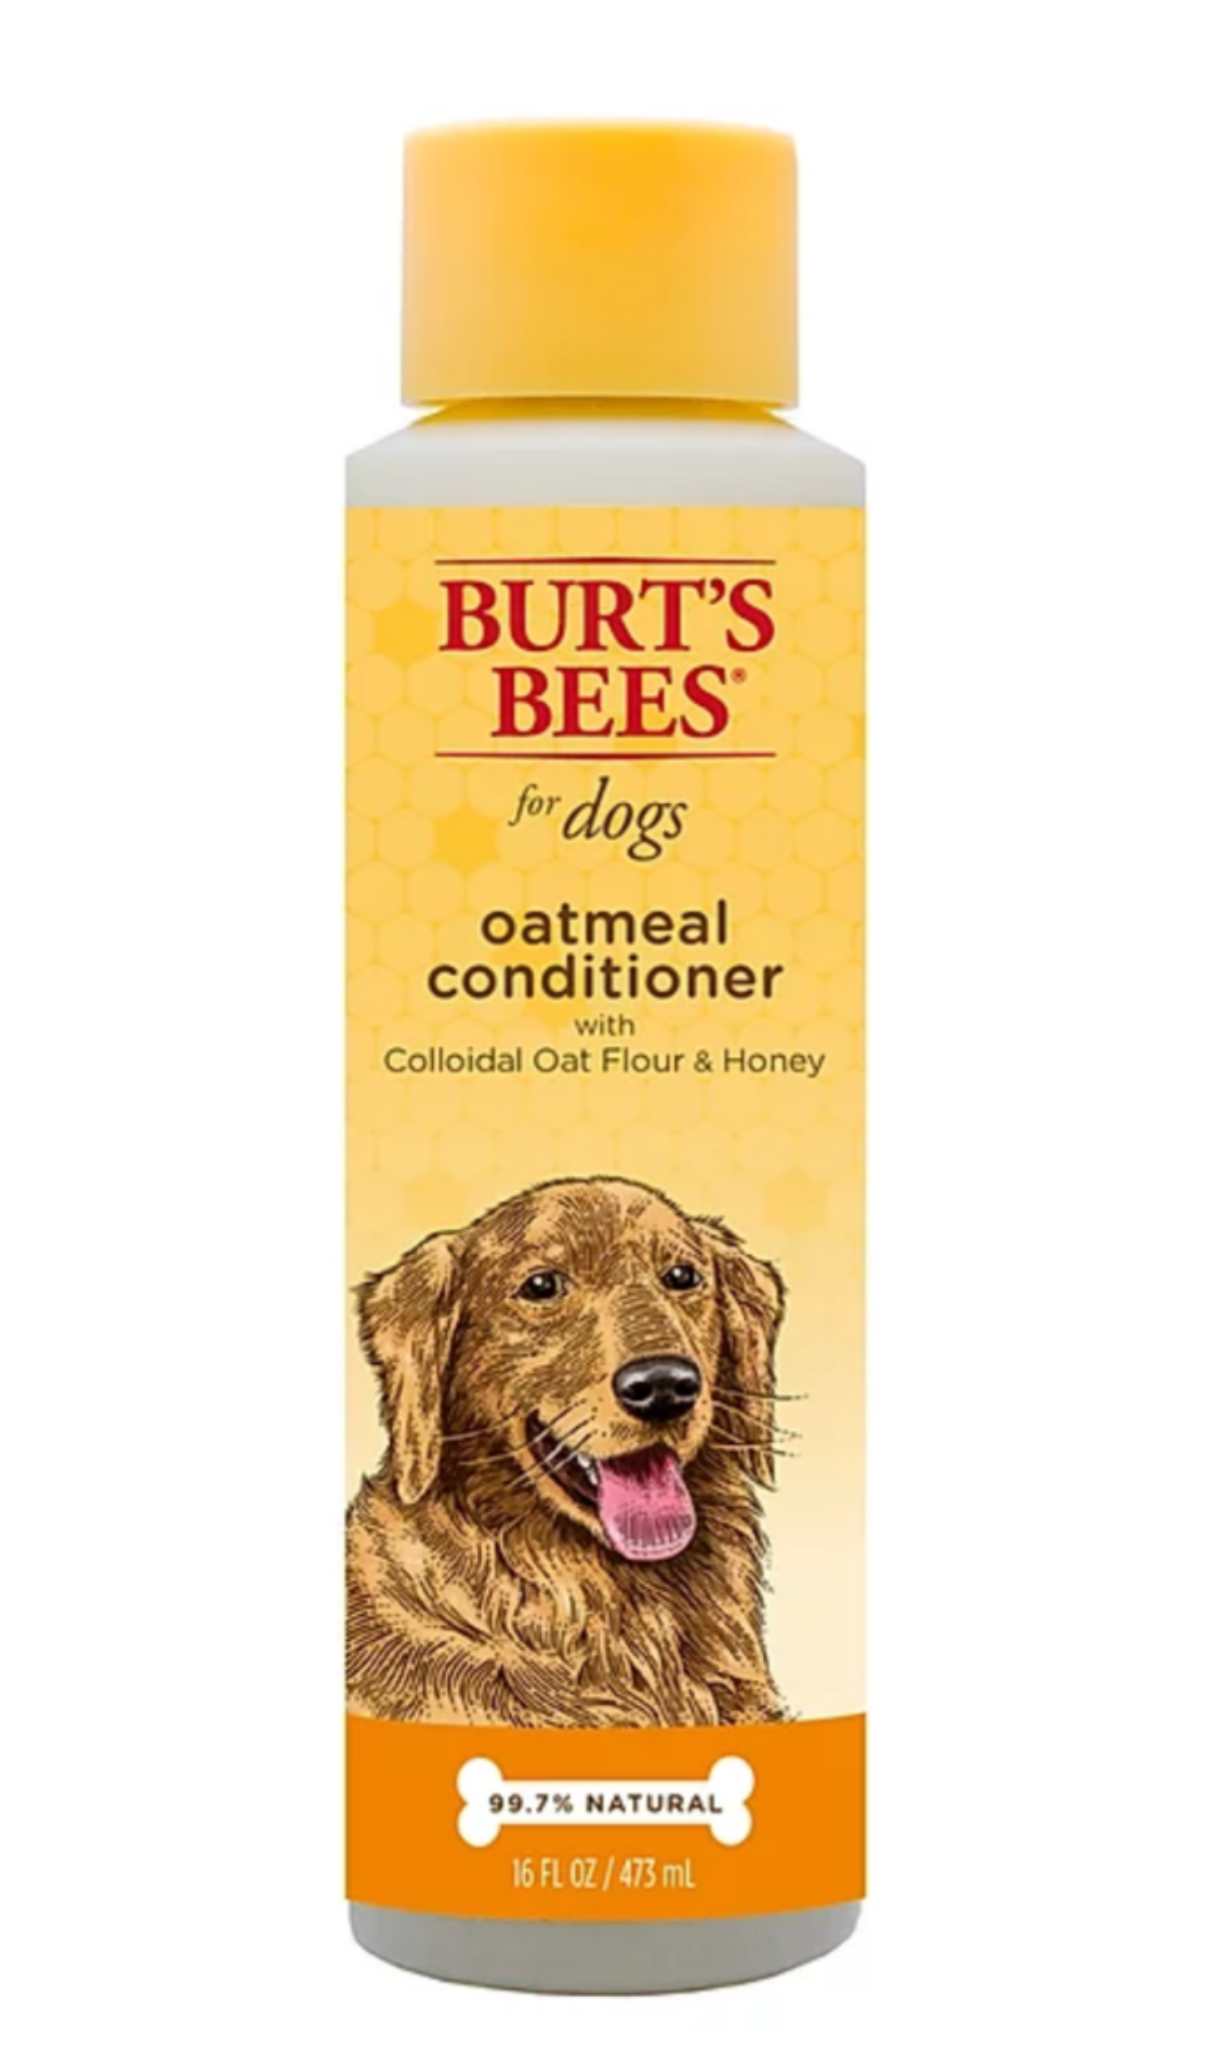 Burt's Bees Oatmeal Conditioner With Colloidal Oat Flour & Honey